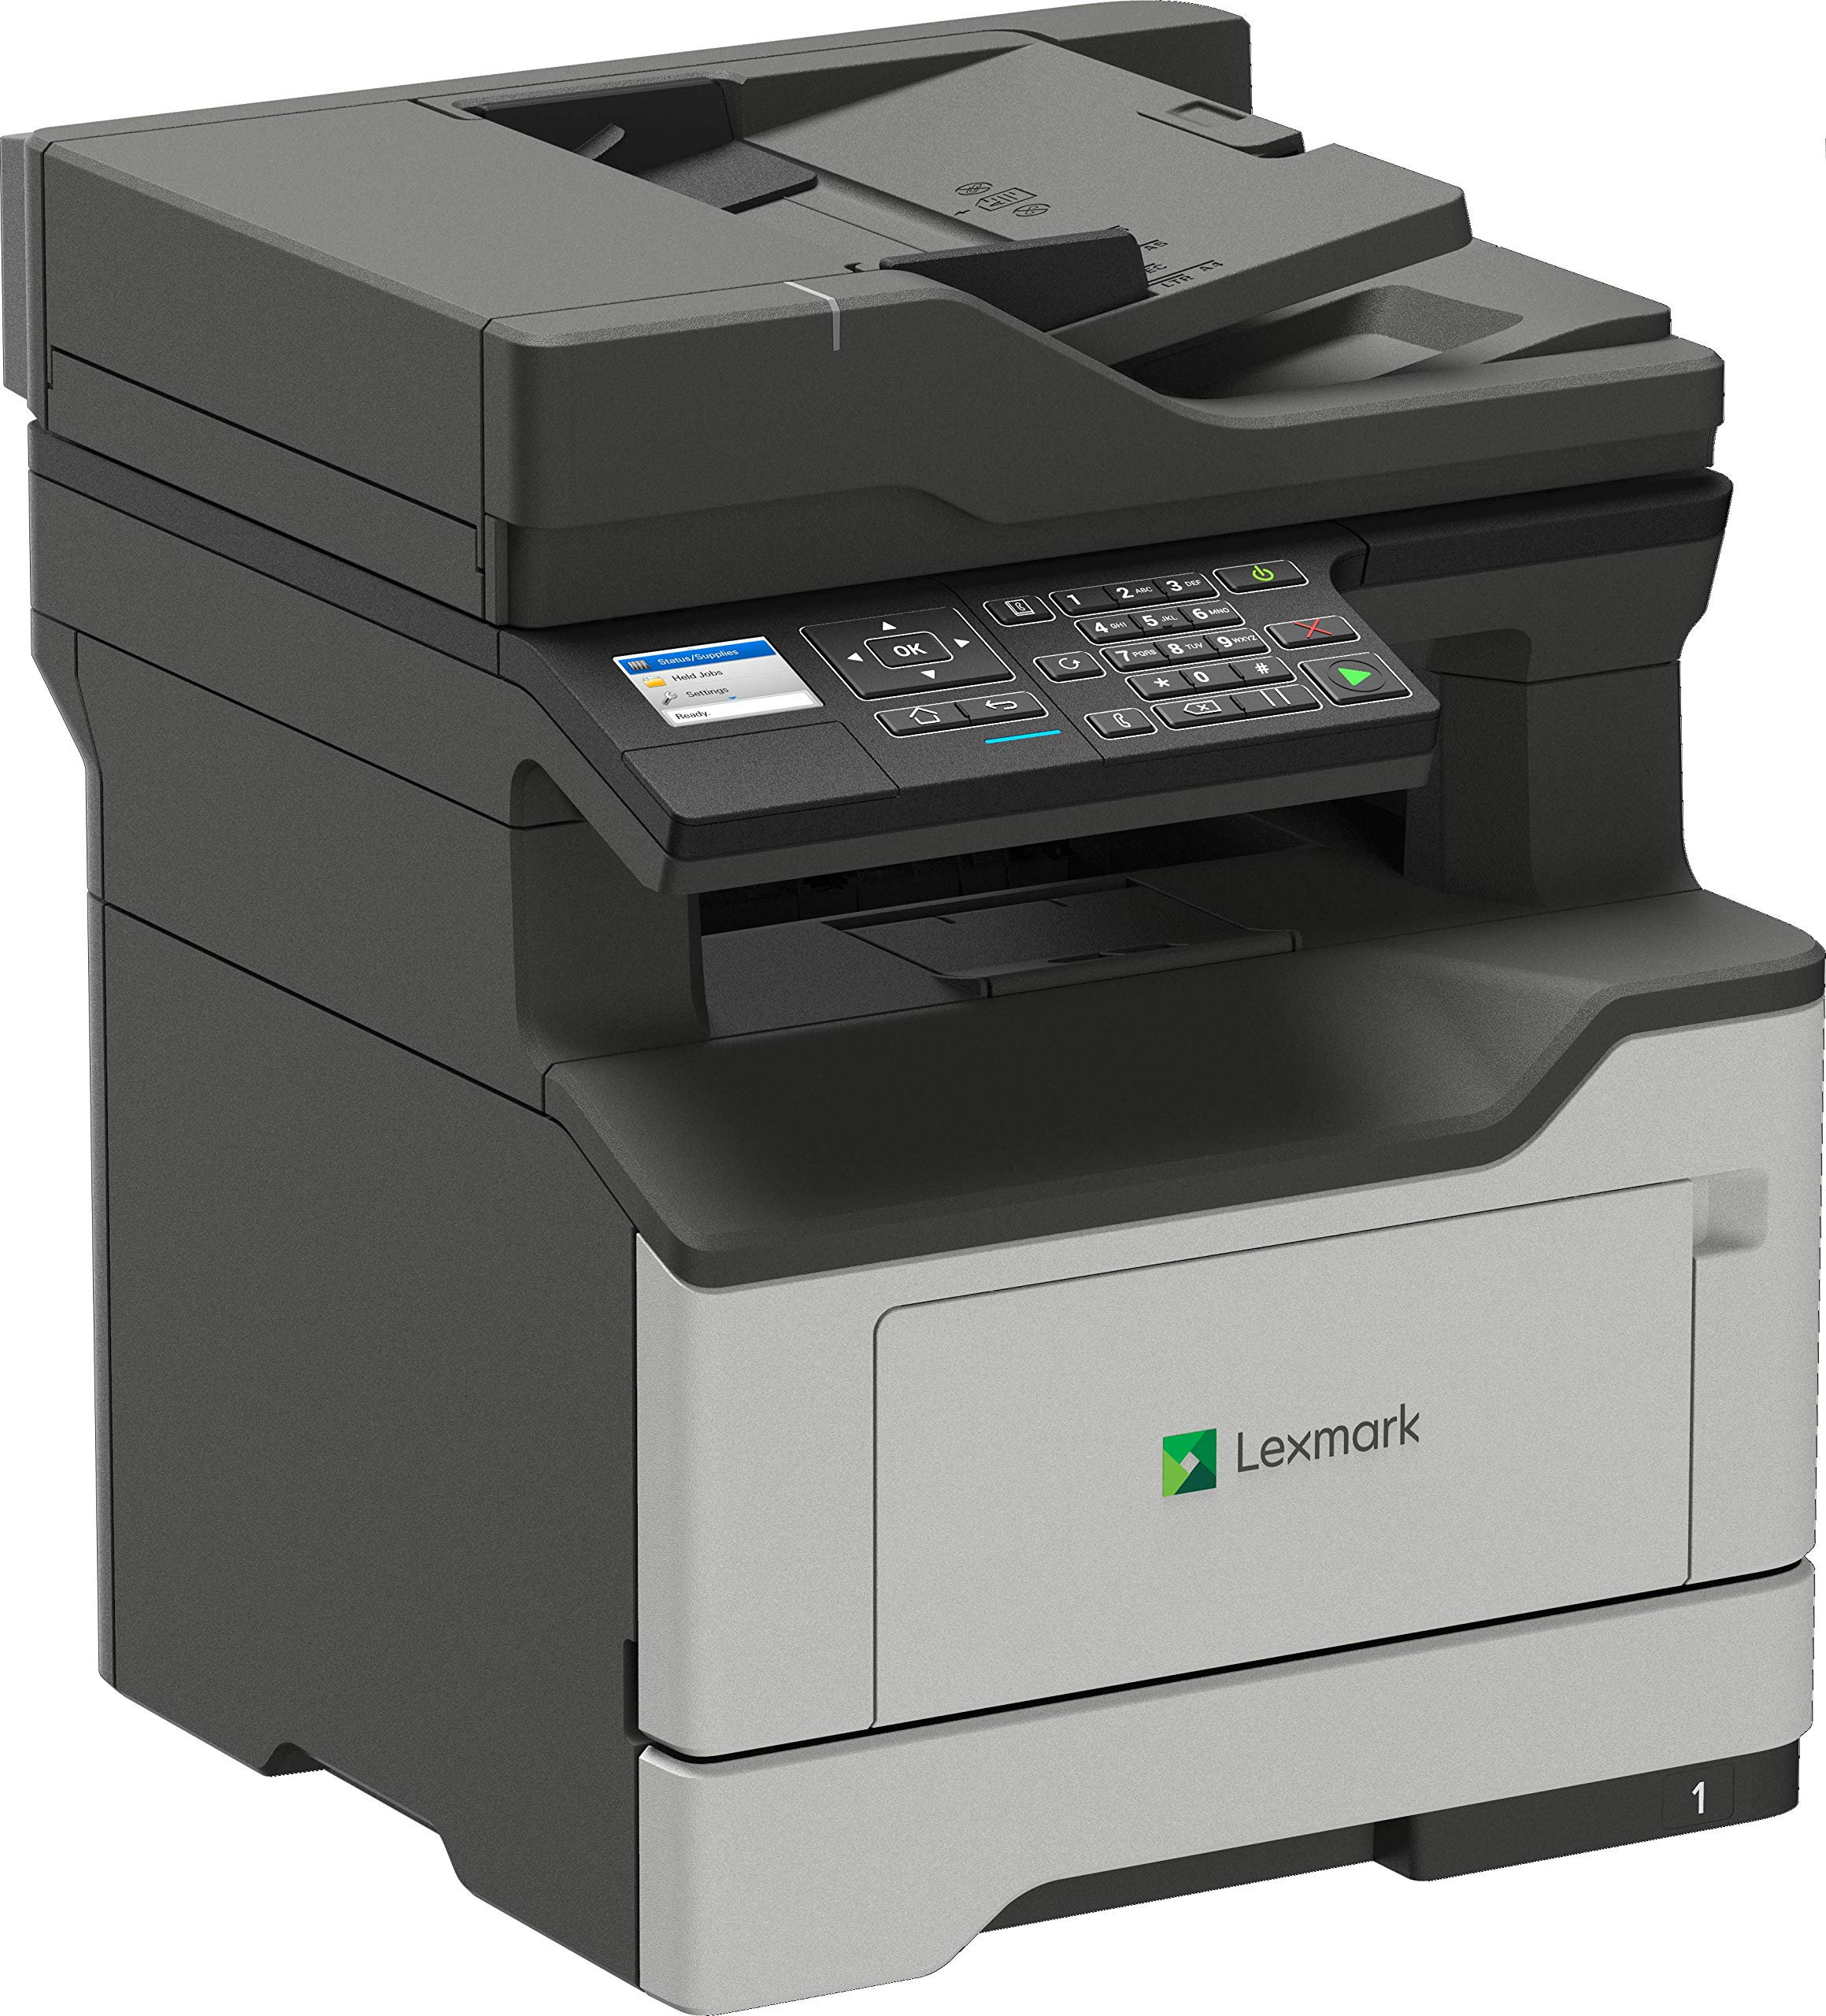 Lexmark MB2338adw Print Only Monochrome Laser Printer Duplex Two Sided Printing Wireless Network & Airprint Ready (36SC640) by Lexmark